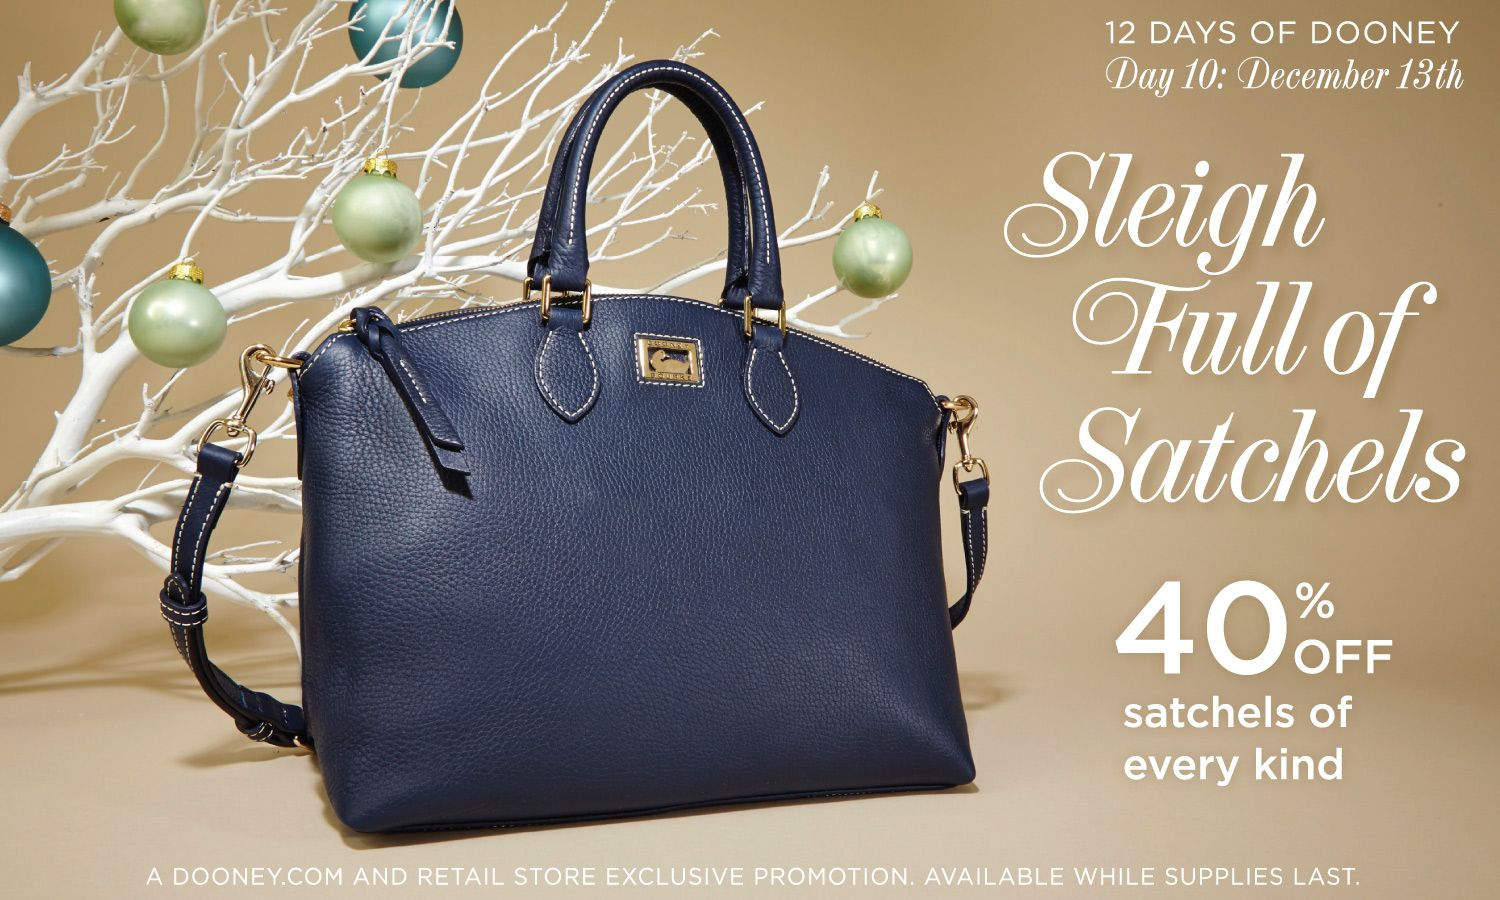 12 Days of Dooney: Day 10 - Sleigh Full of Satchels! 40% off satchels of every kind. Shop early at http://www.dooney.com/OA_HTML/ibeCCtpSctDspRte.jsp?minisite=10020&respid=22372&dbref=d436&dbmed=social&dbsource=12DOD13D10&dbname=12DOD13D10+%28d436%29&section=46786